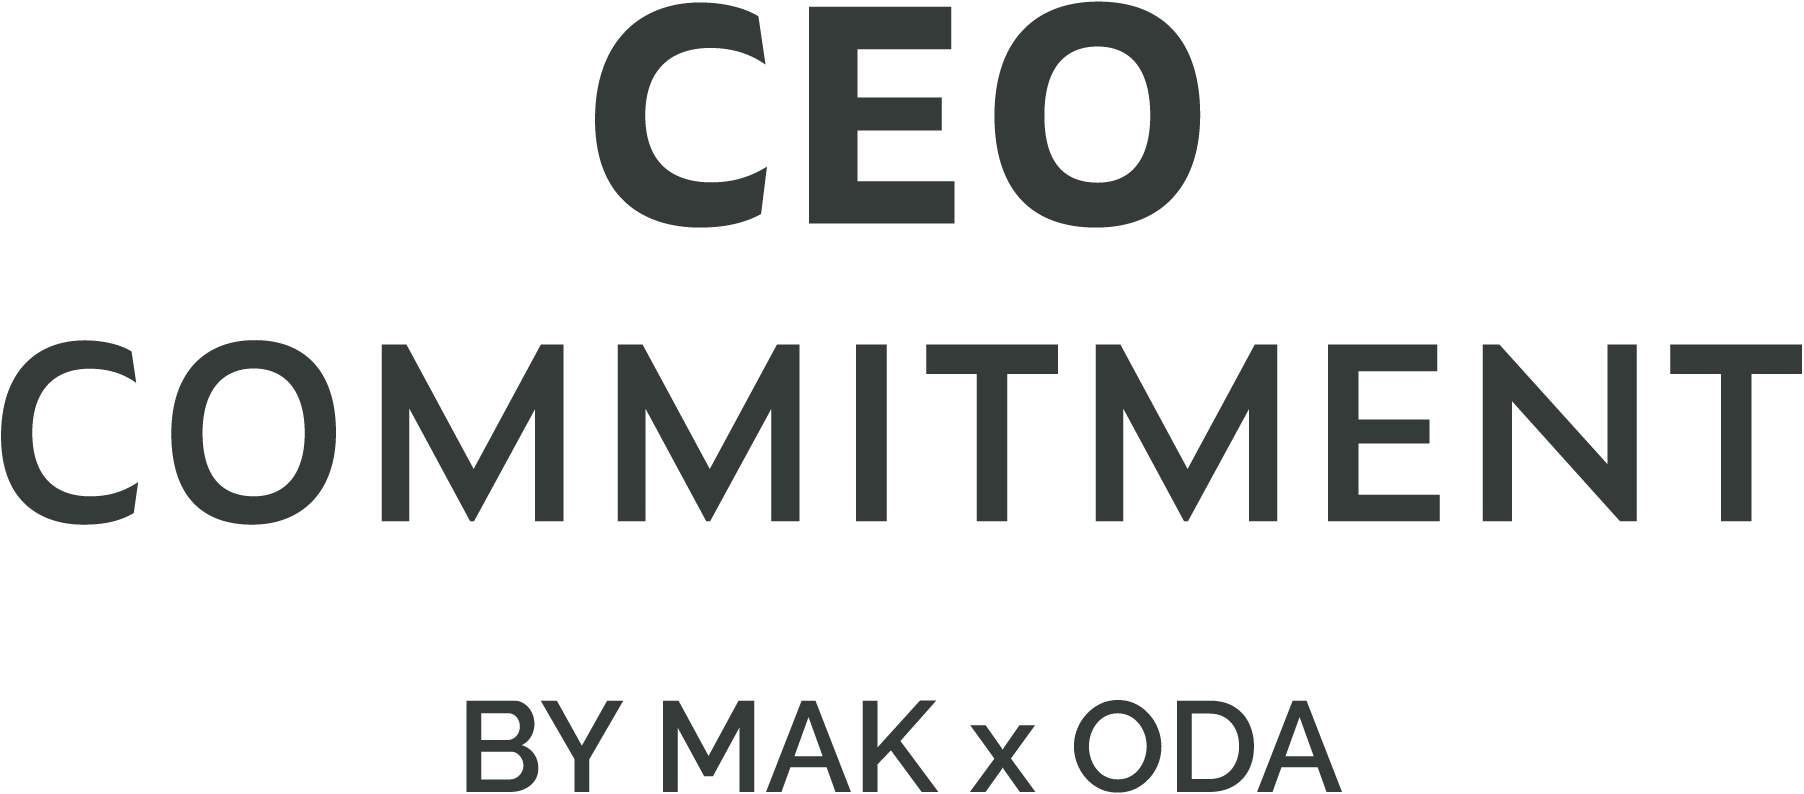 CEO Commitment by MAK x ODA